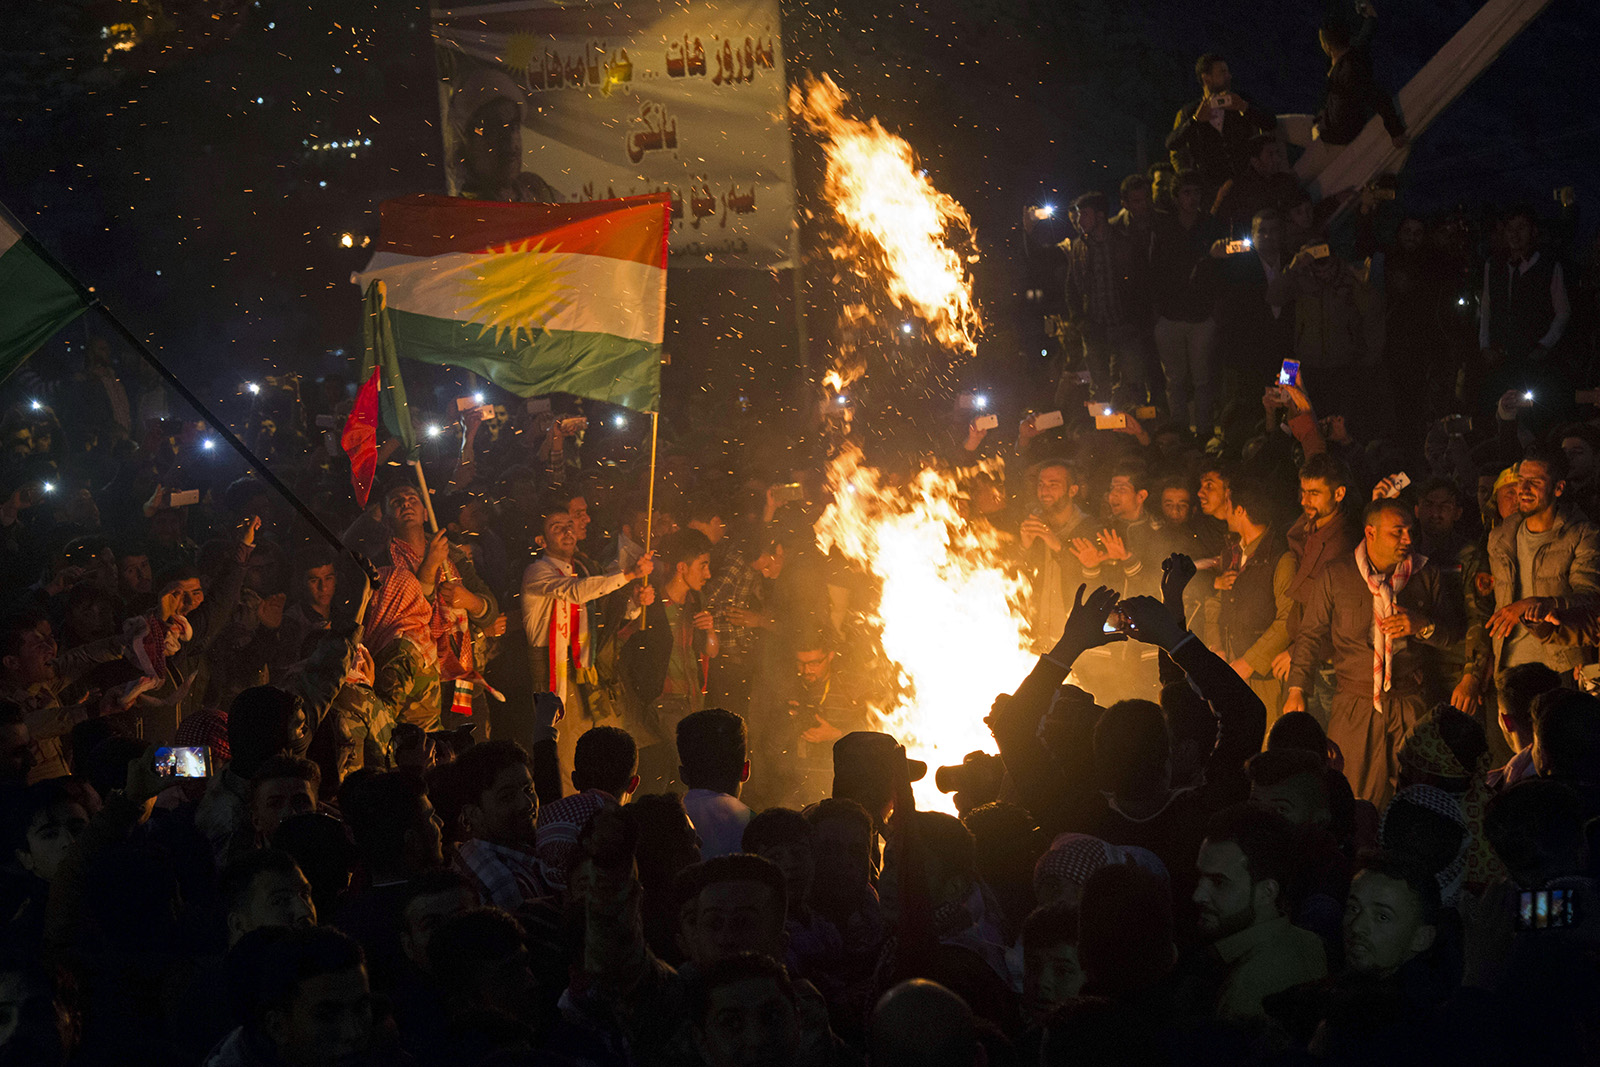 """Kurdish men and women gather around a fire during celebrations for Nowruz, in Akre, Iraq. Nowruz, the Farsi-language word for """"new year,"""" is an ancient Persian festival, celebrated on the first day of spring in countries including Afghanistan and Iran. (AP Photo/Seivan M.Salim)"""